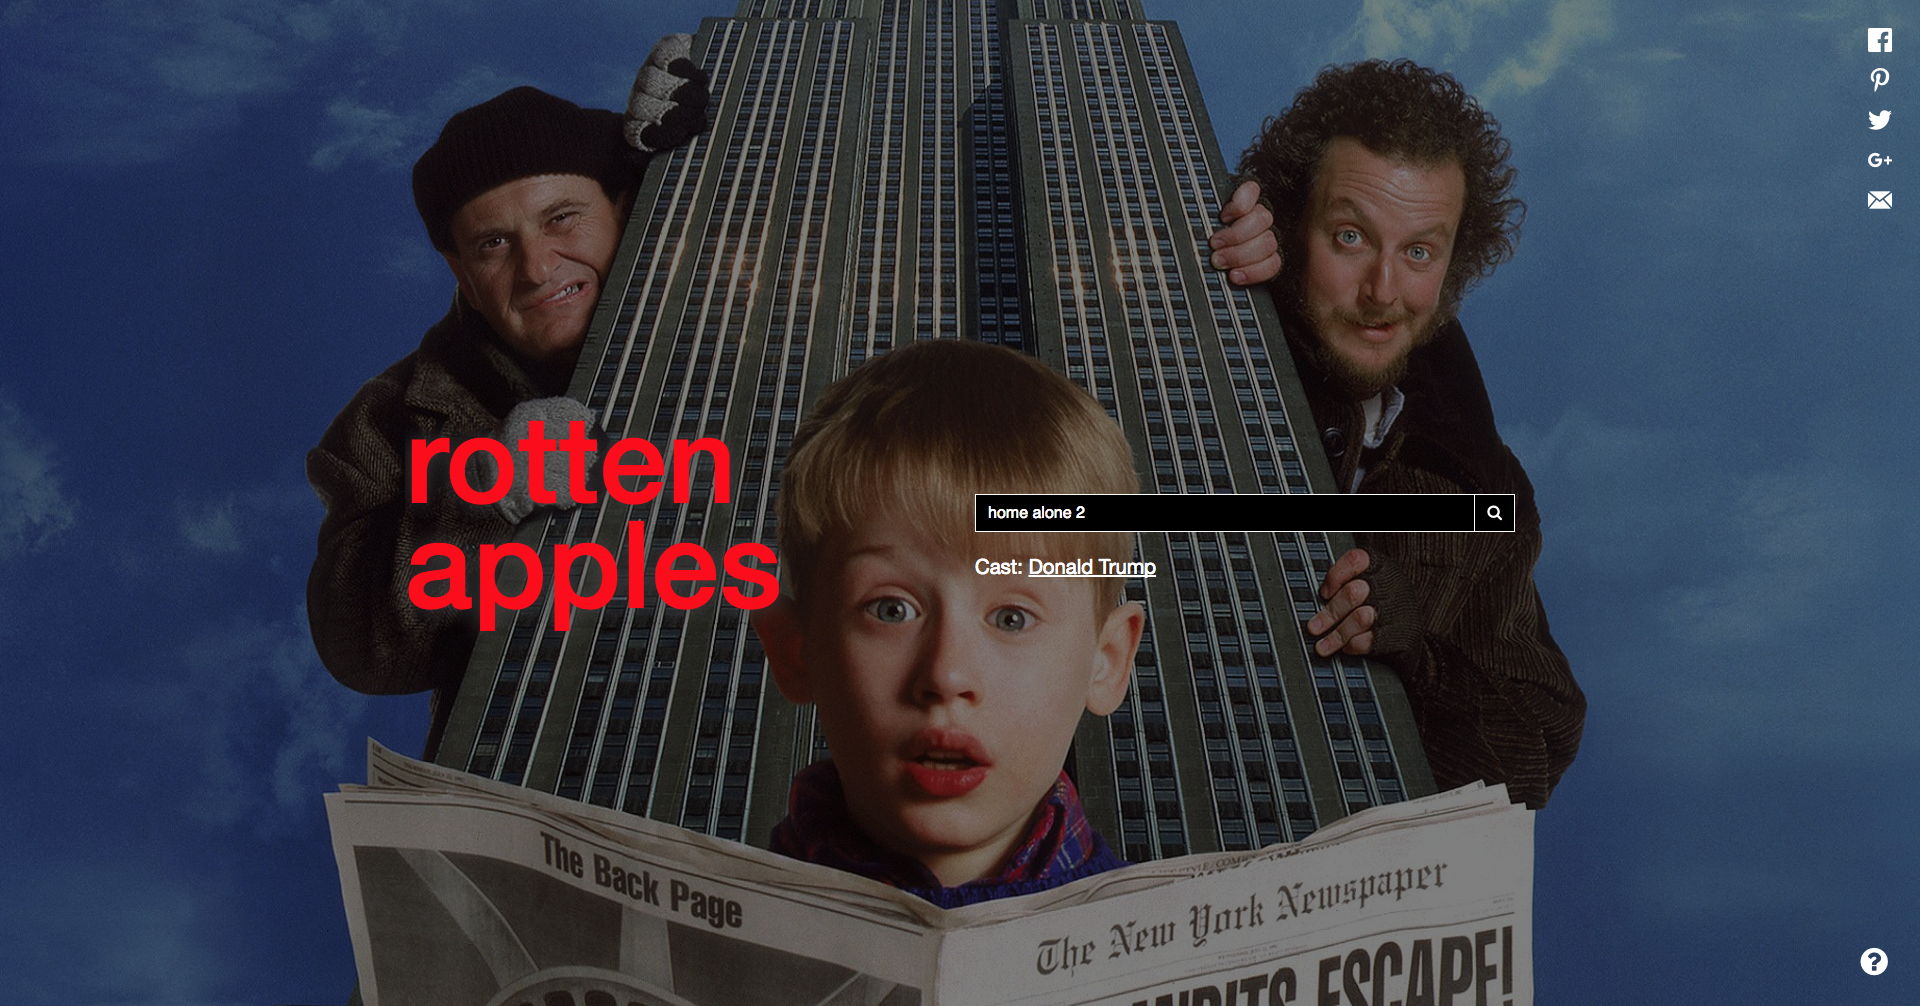 Rotten Apples - Home Alone 2